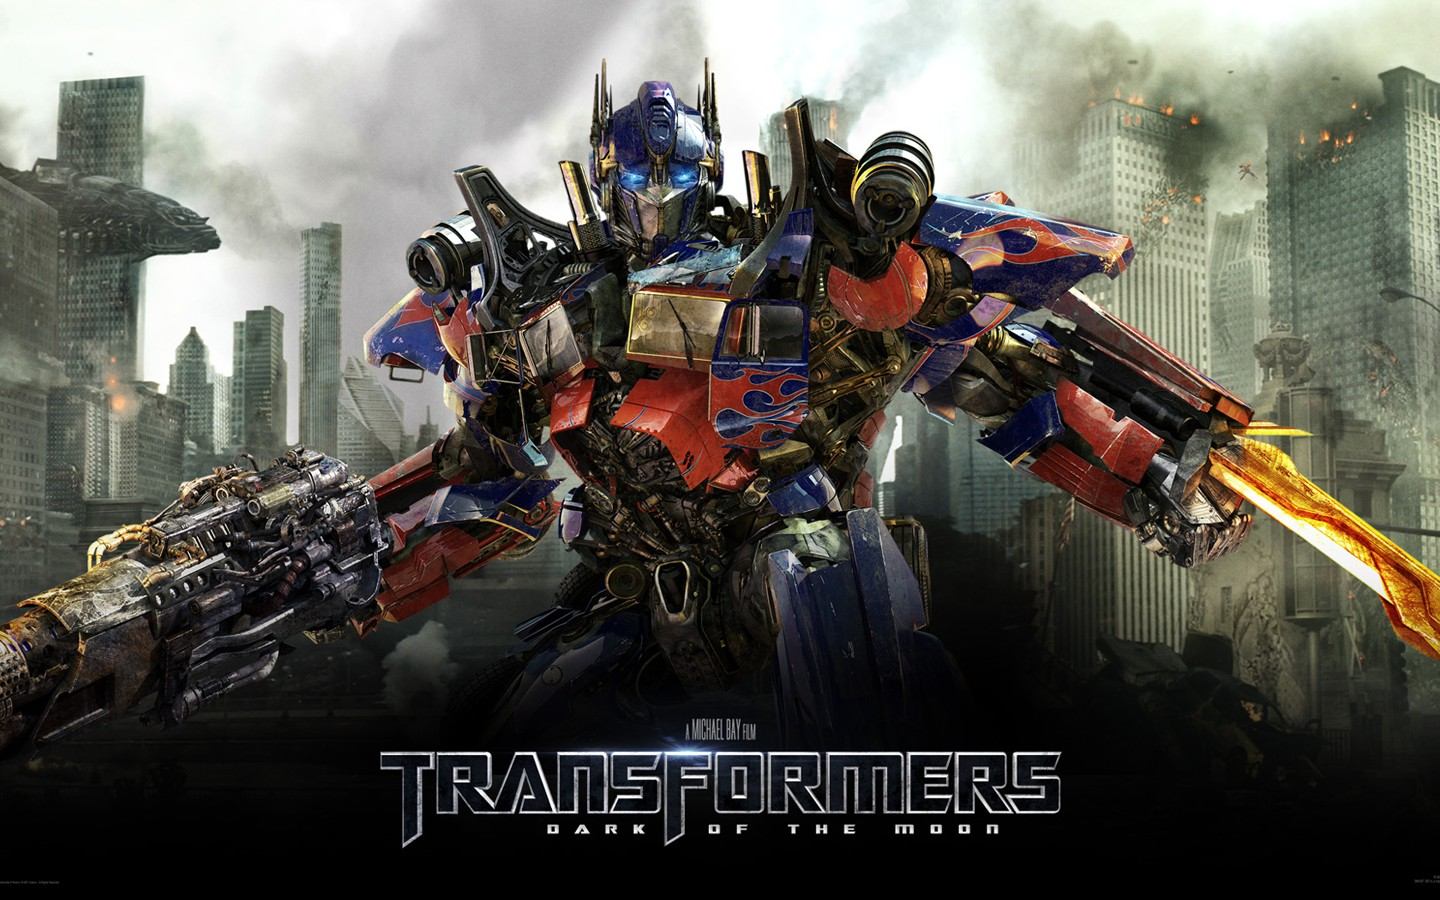 Transformers, when on the black 29704